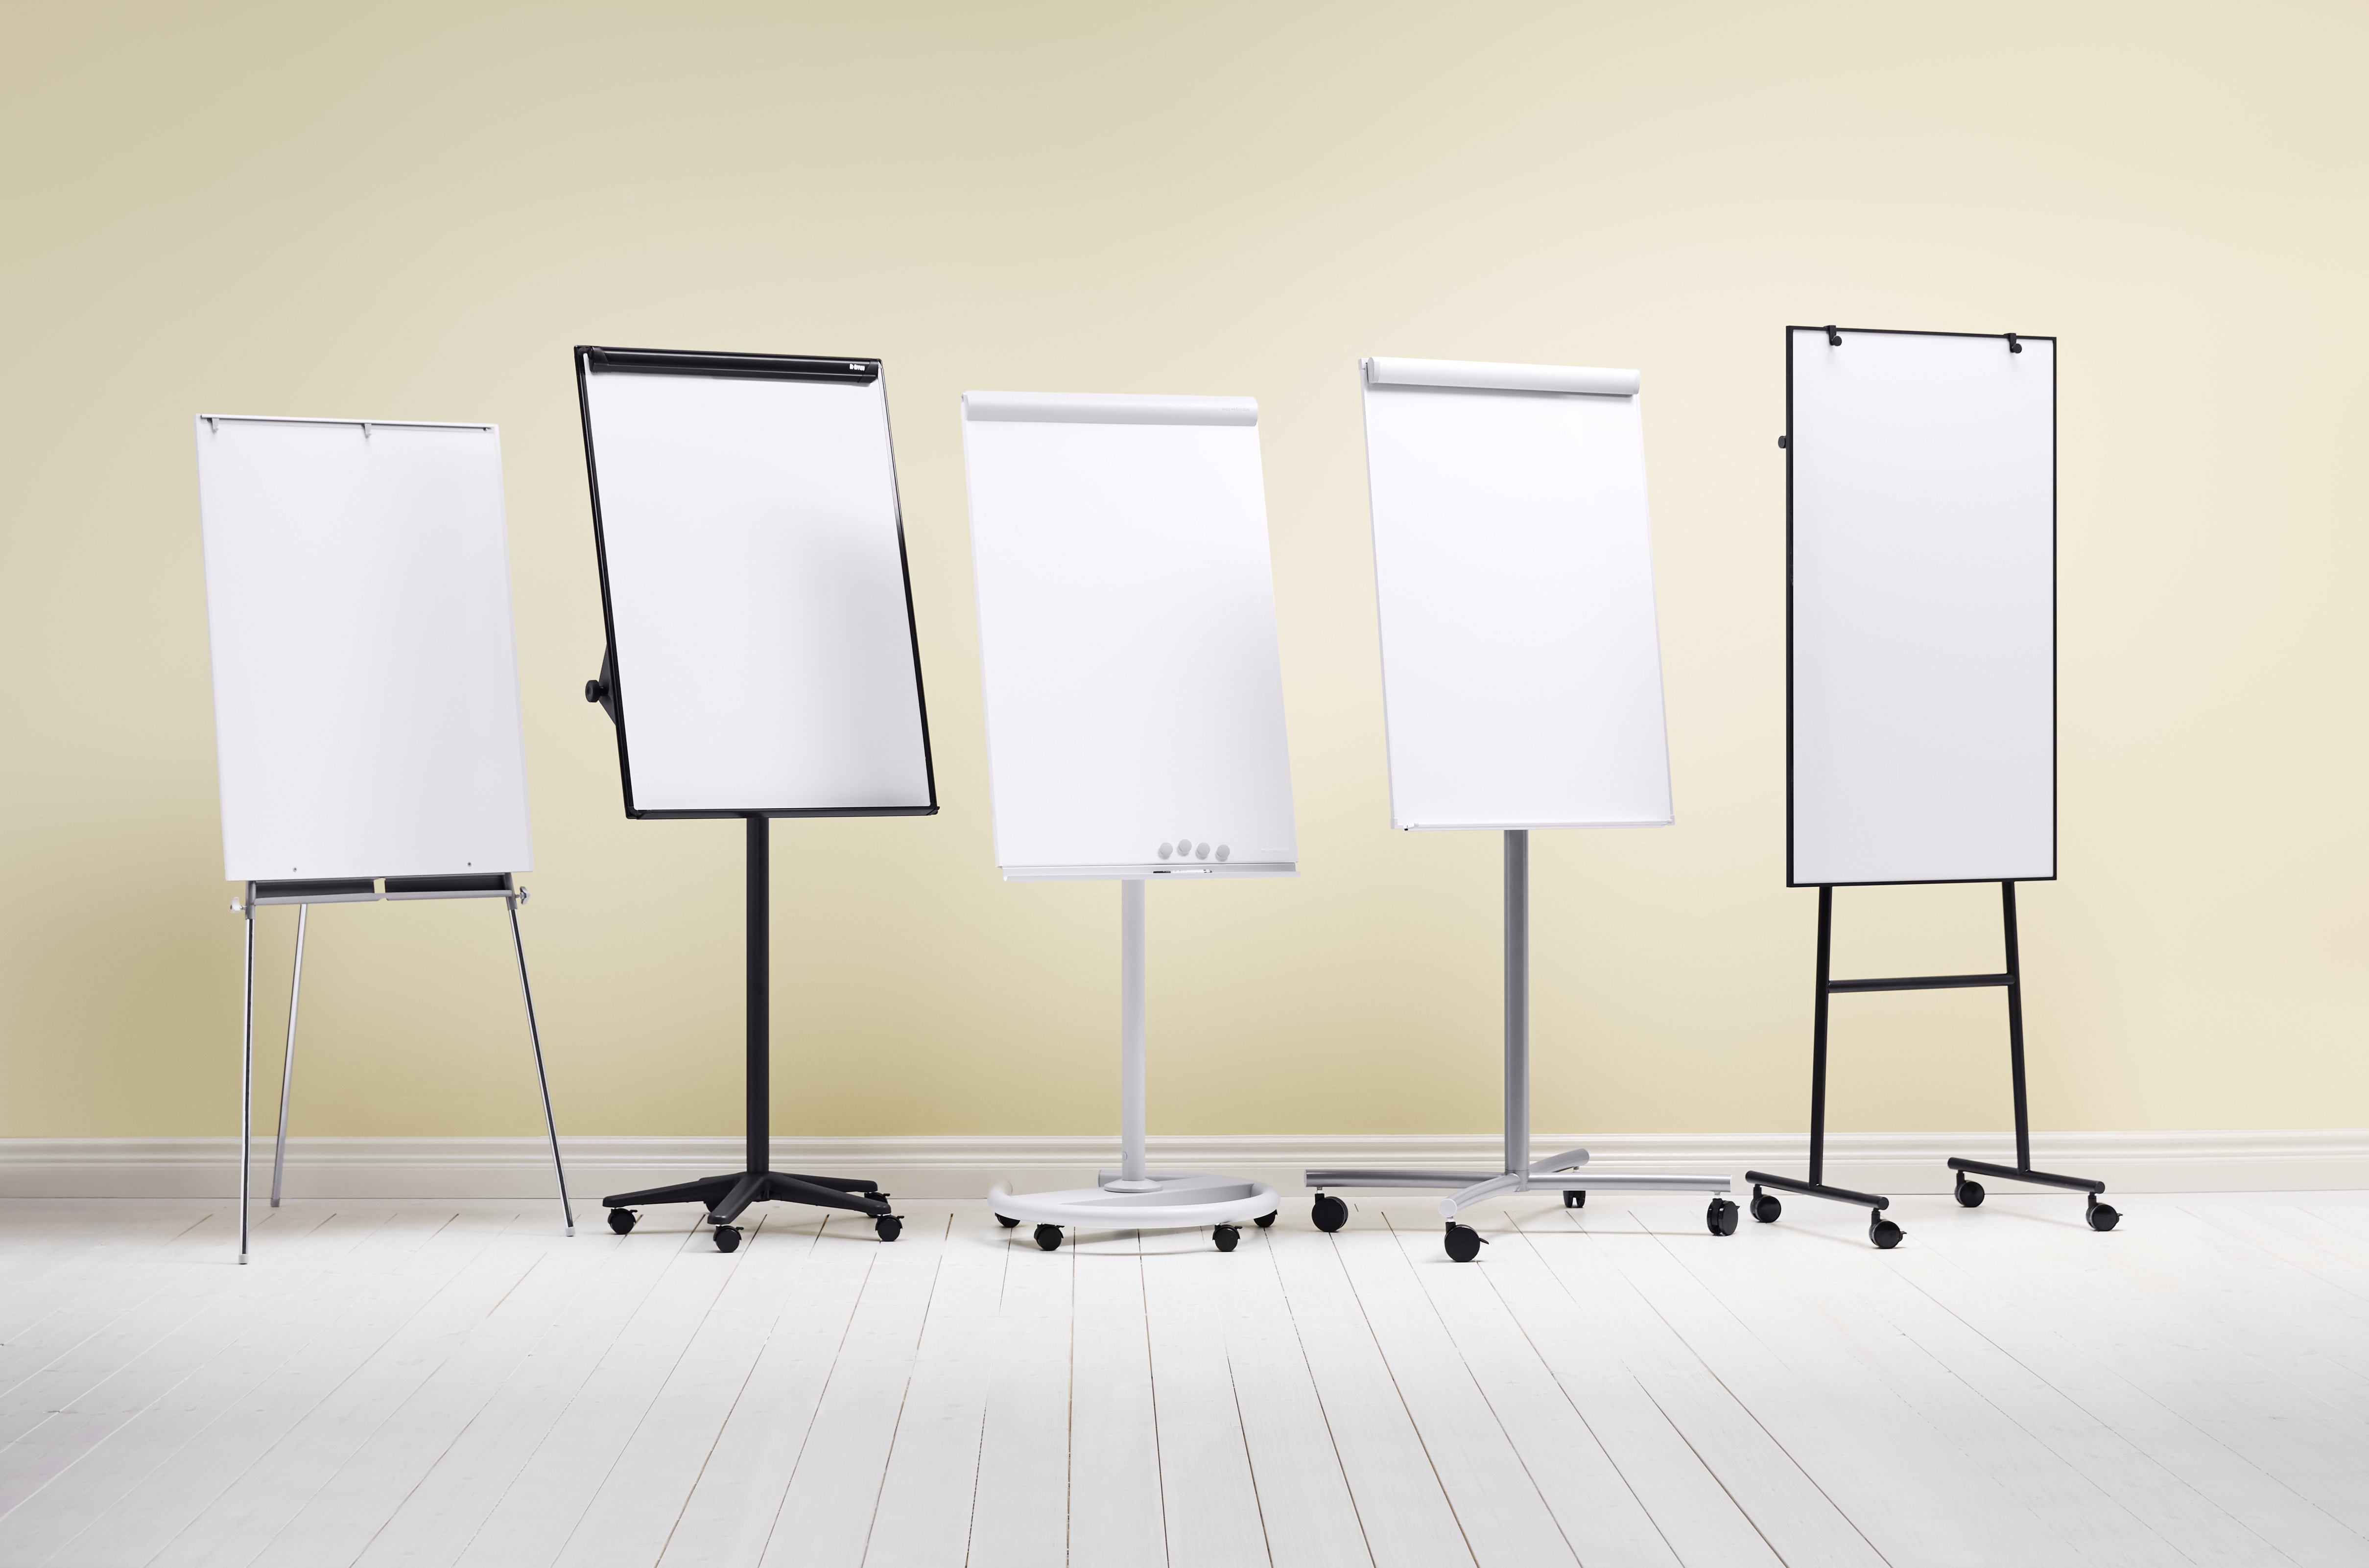 Innovative Types of Whiteboards for Corporate & Academic Use